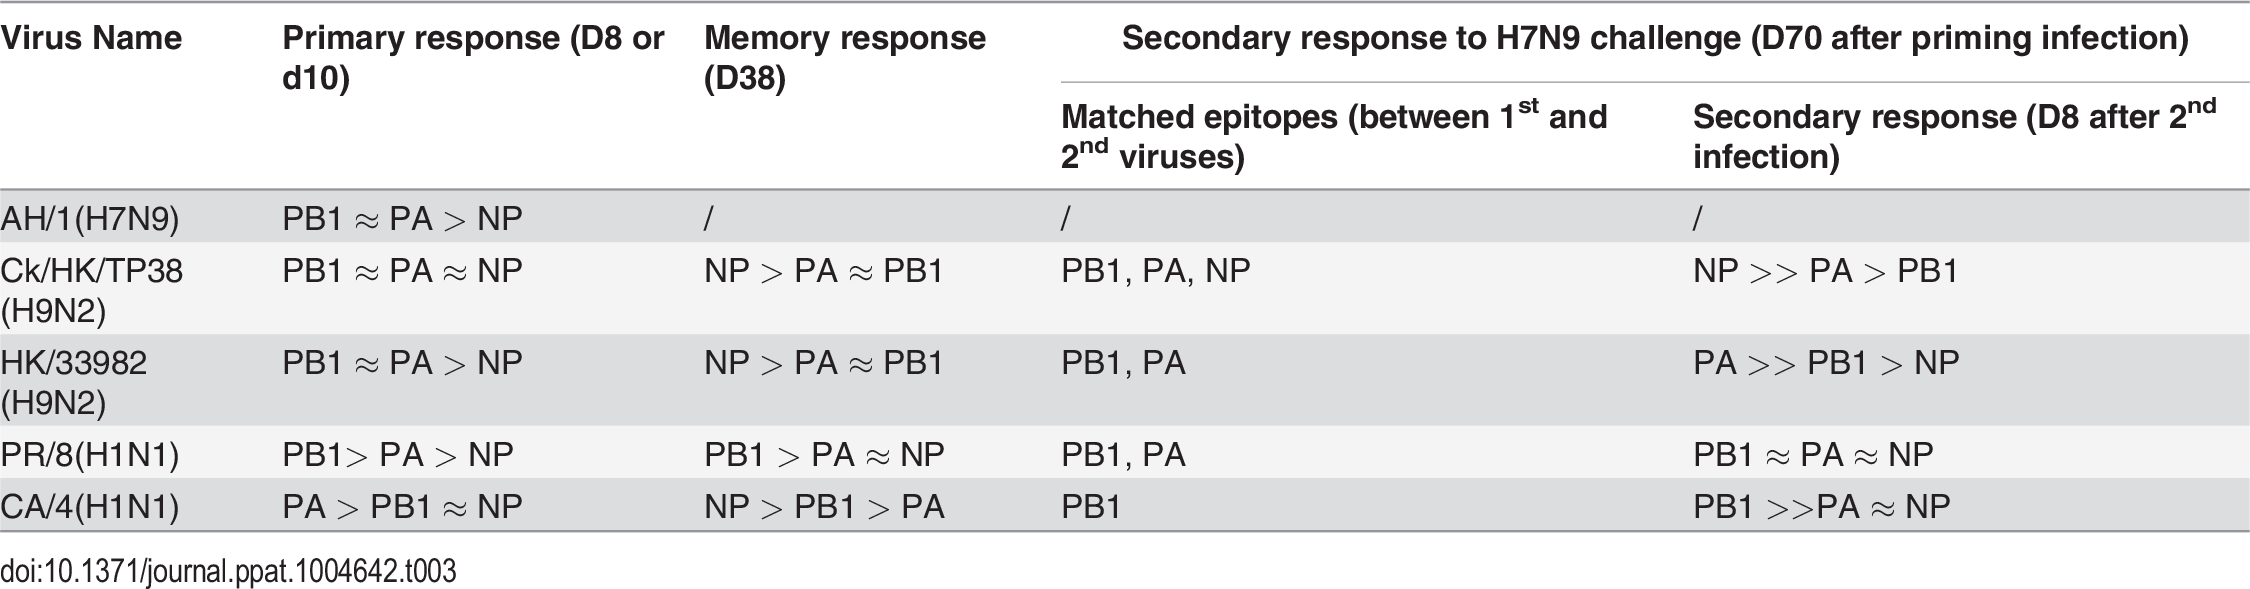 Summary of virus-specific CTL epitope hierarchies.